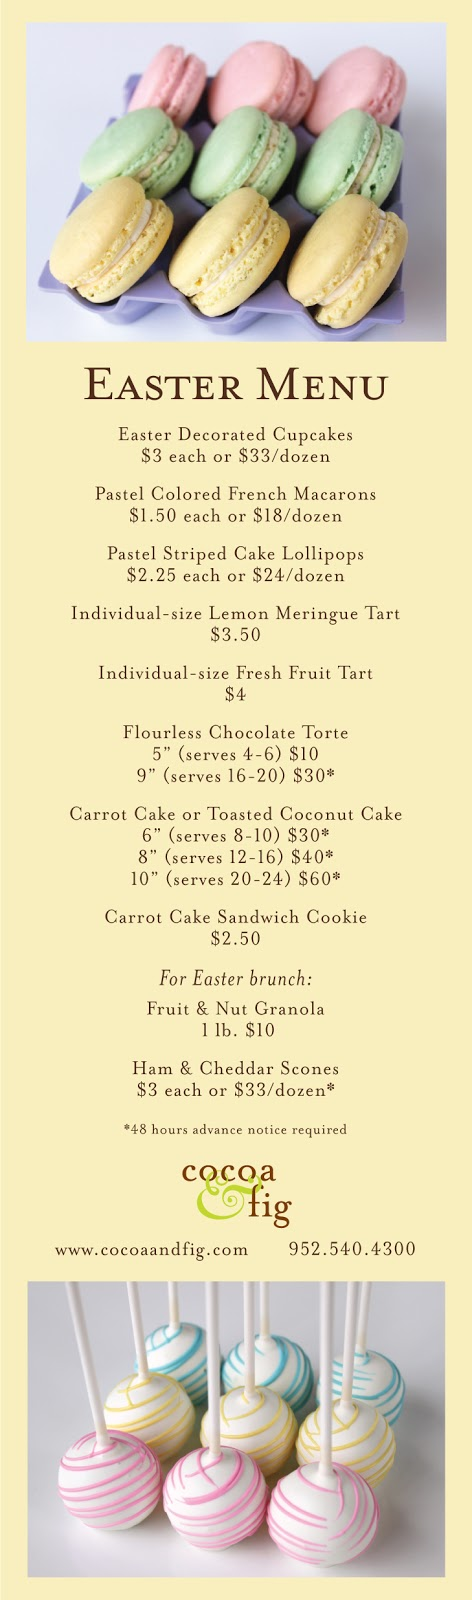 Easter Dessert Menu Minneapolis